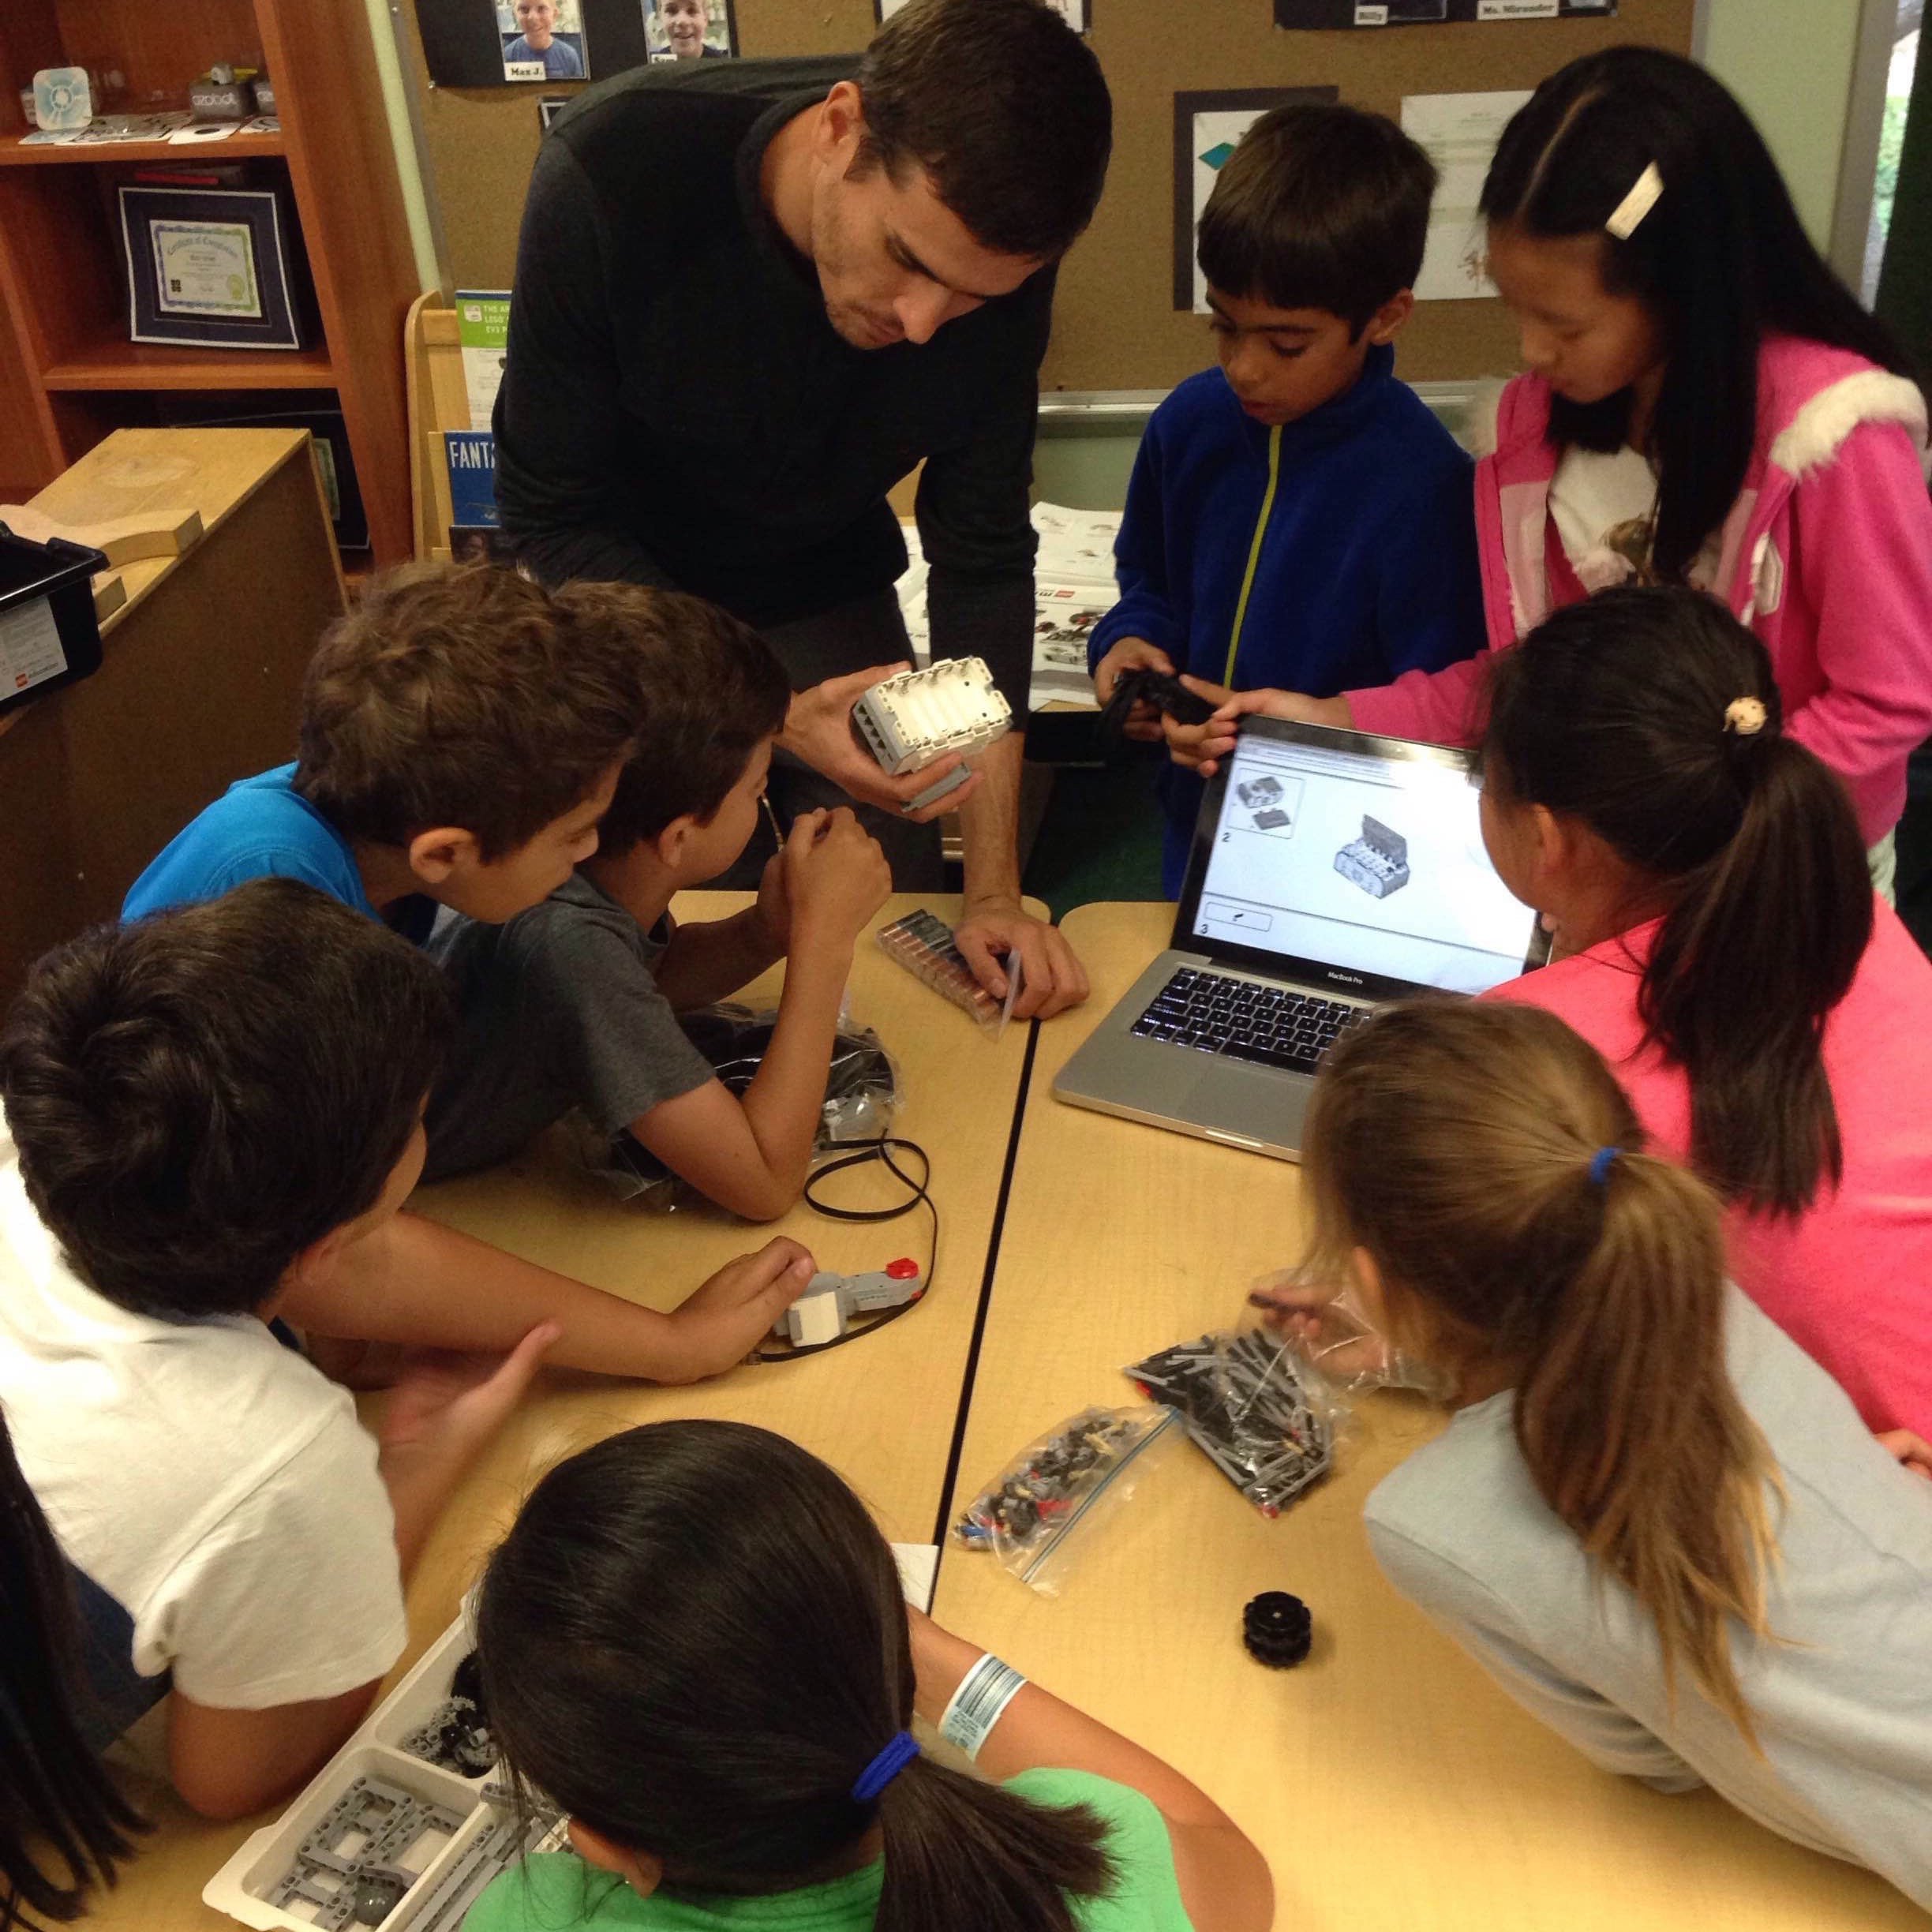 Robotics, Engineering and Coding - Create, Make and Do with Technology